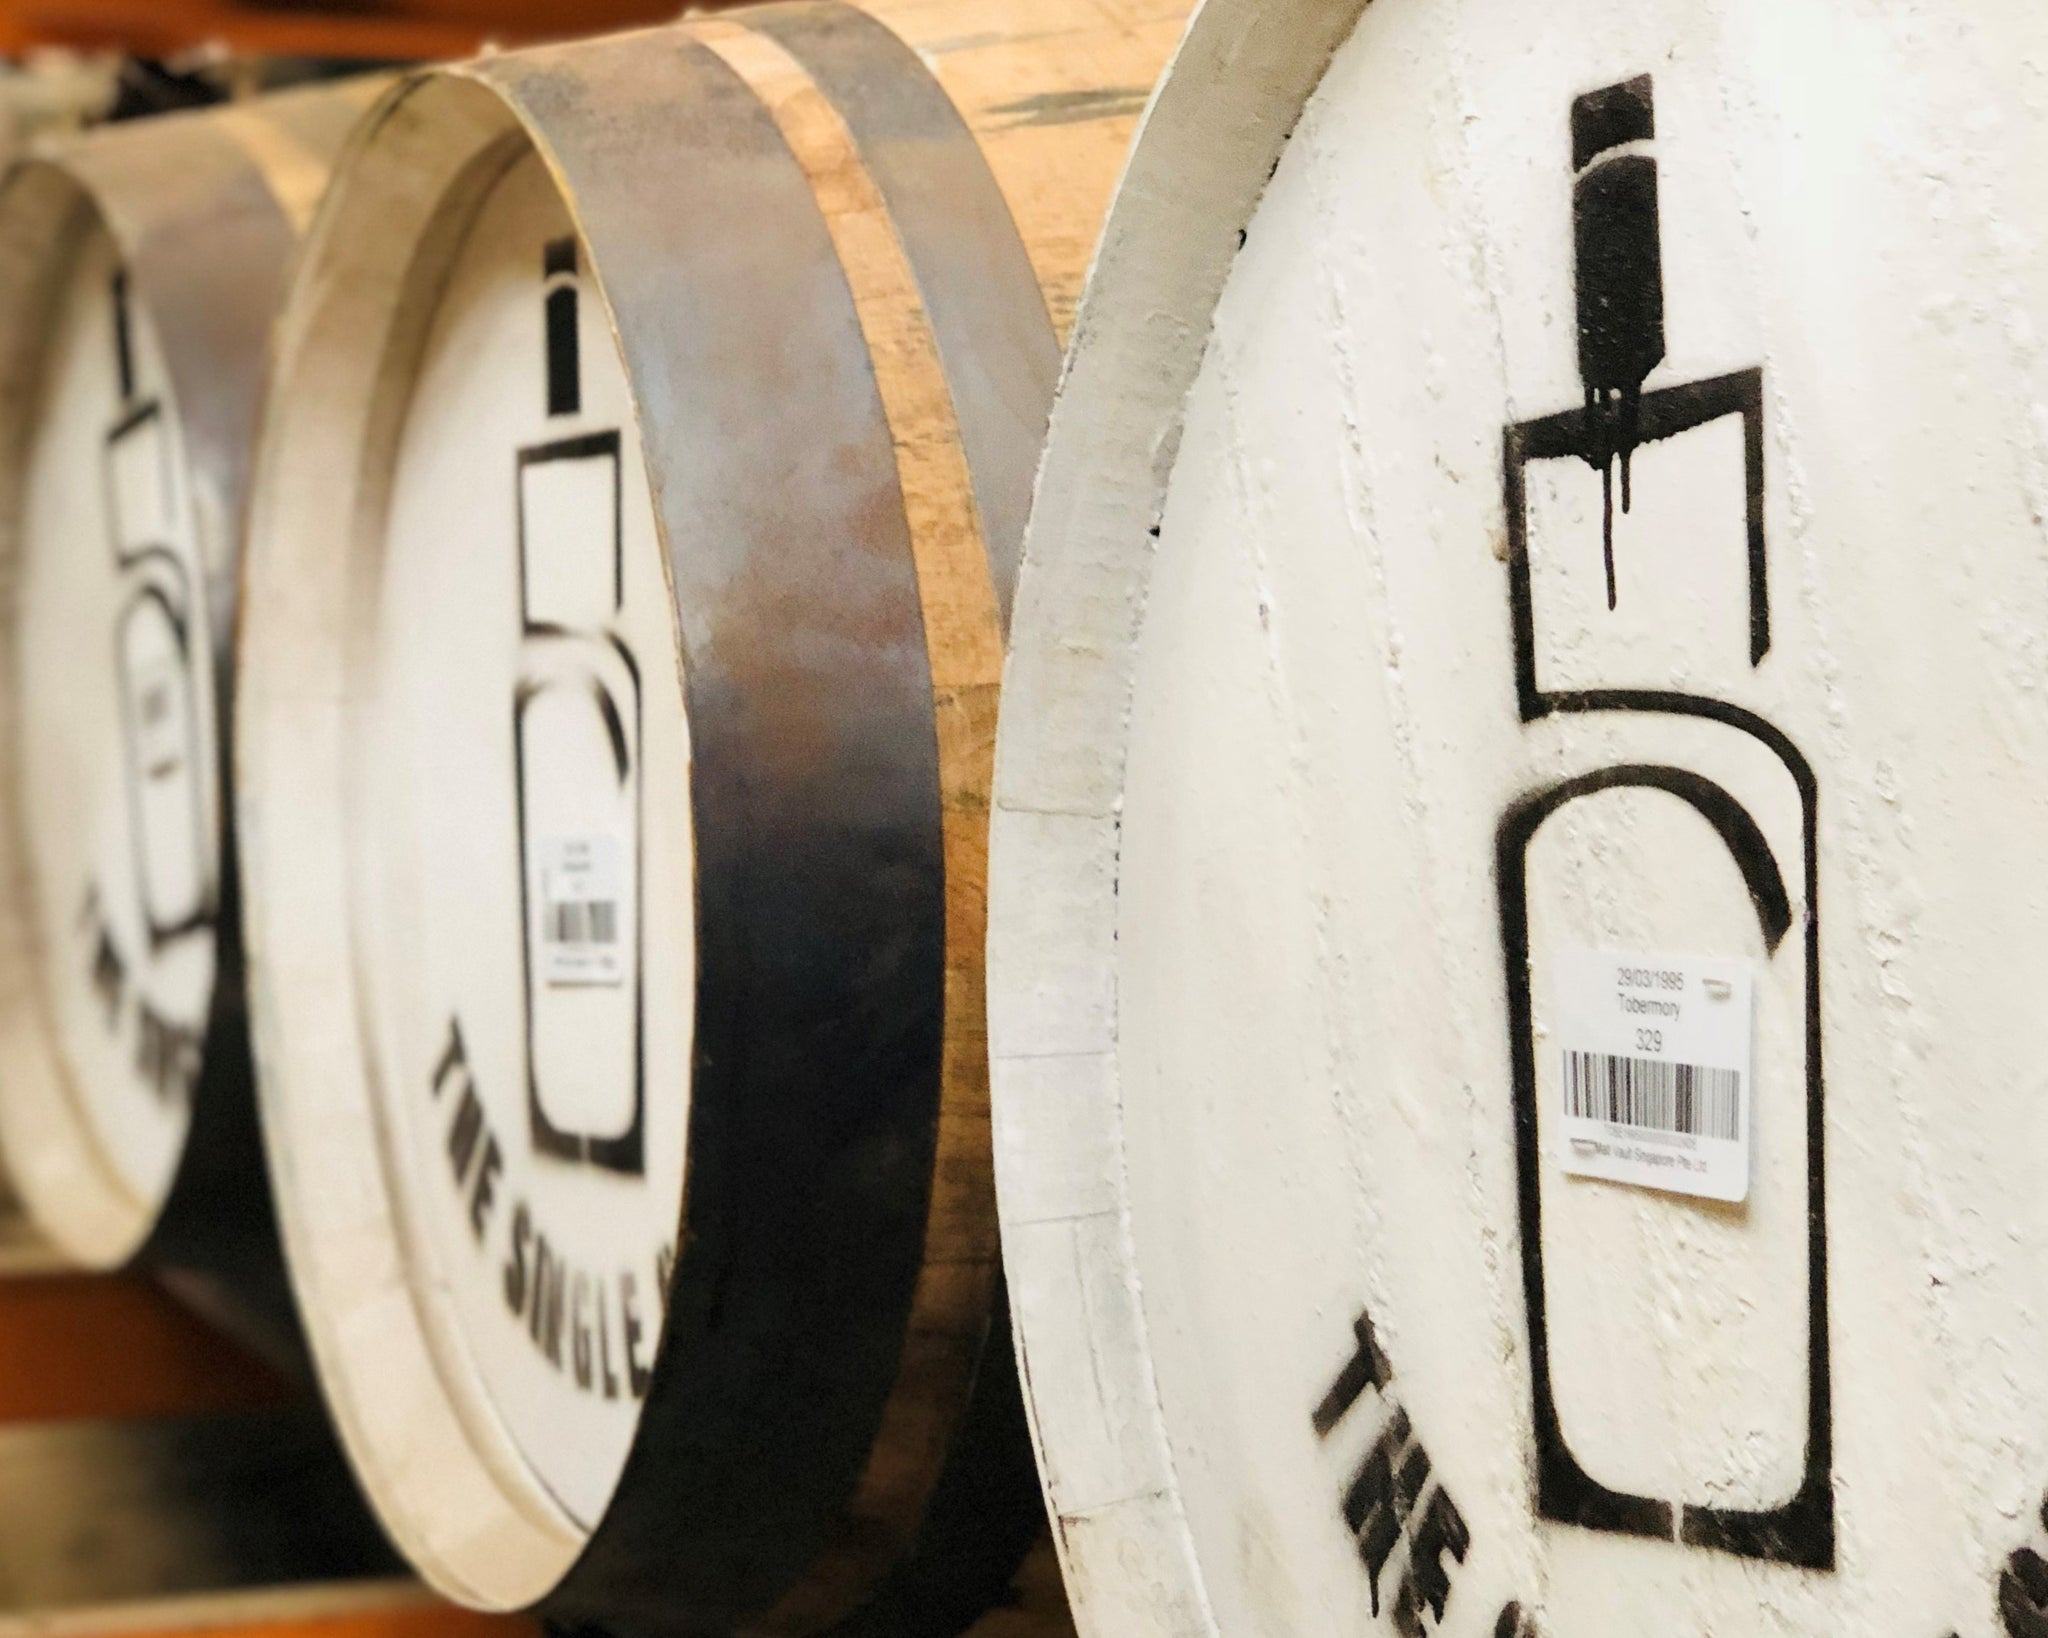 Types and sizes of whisky casks